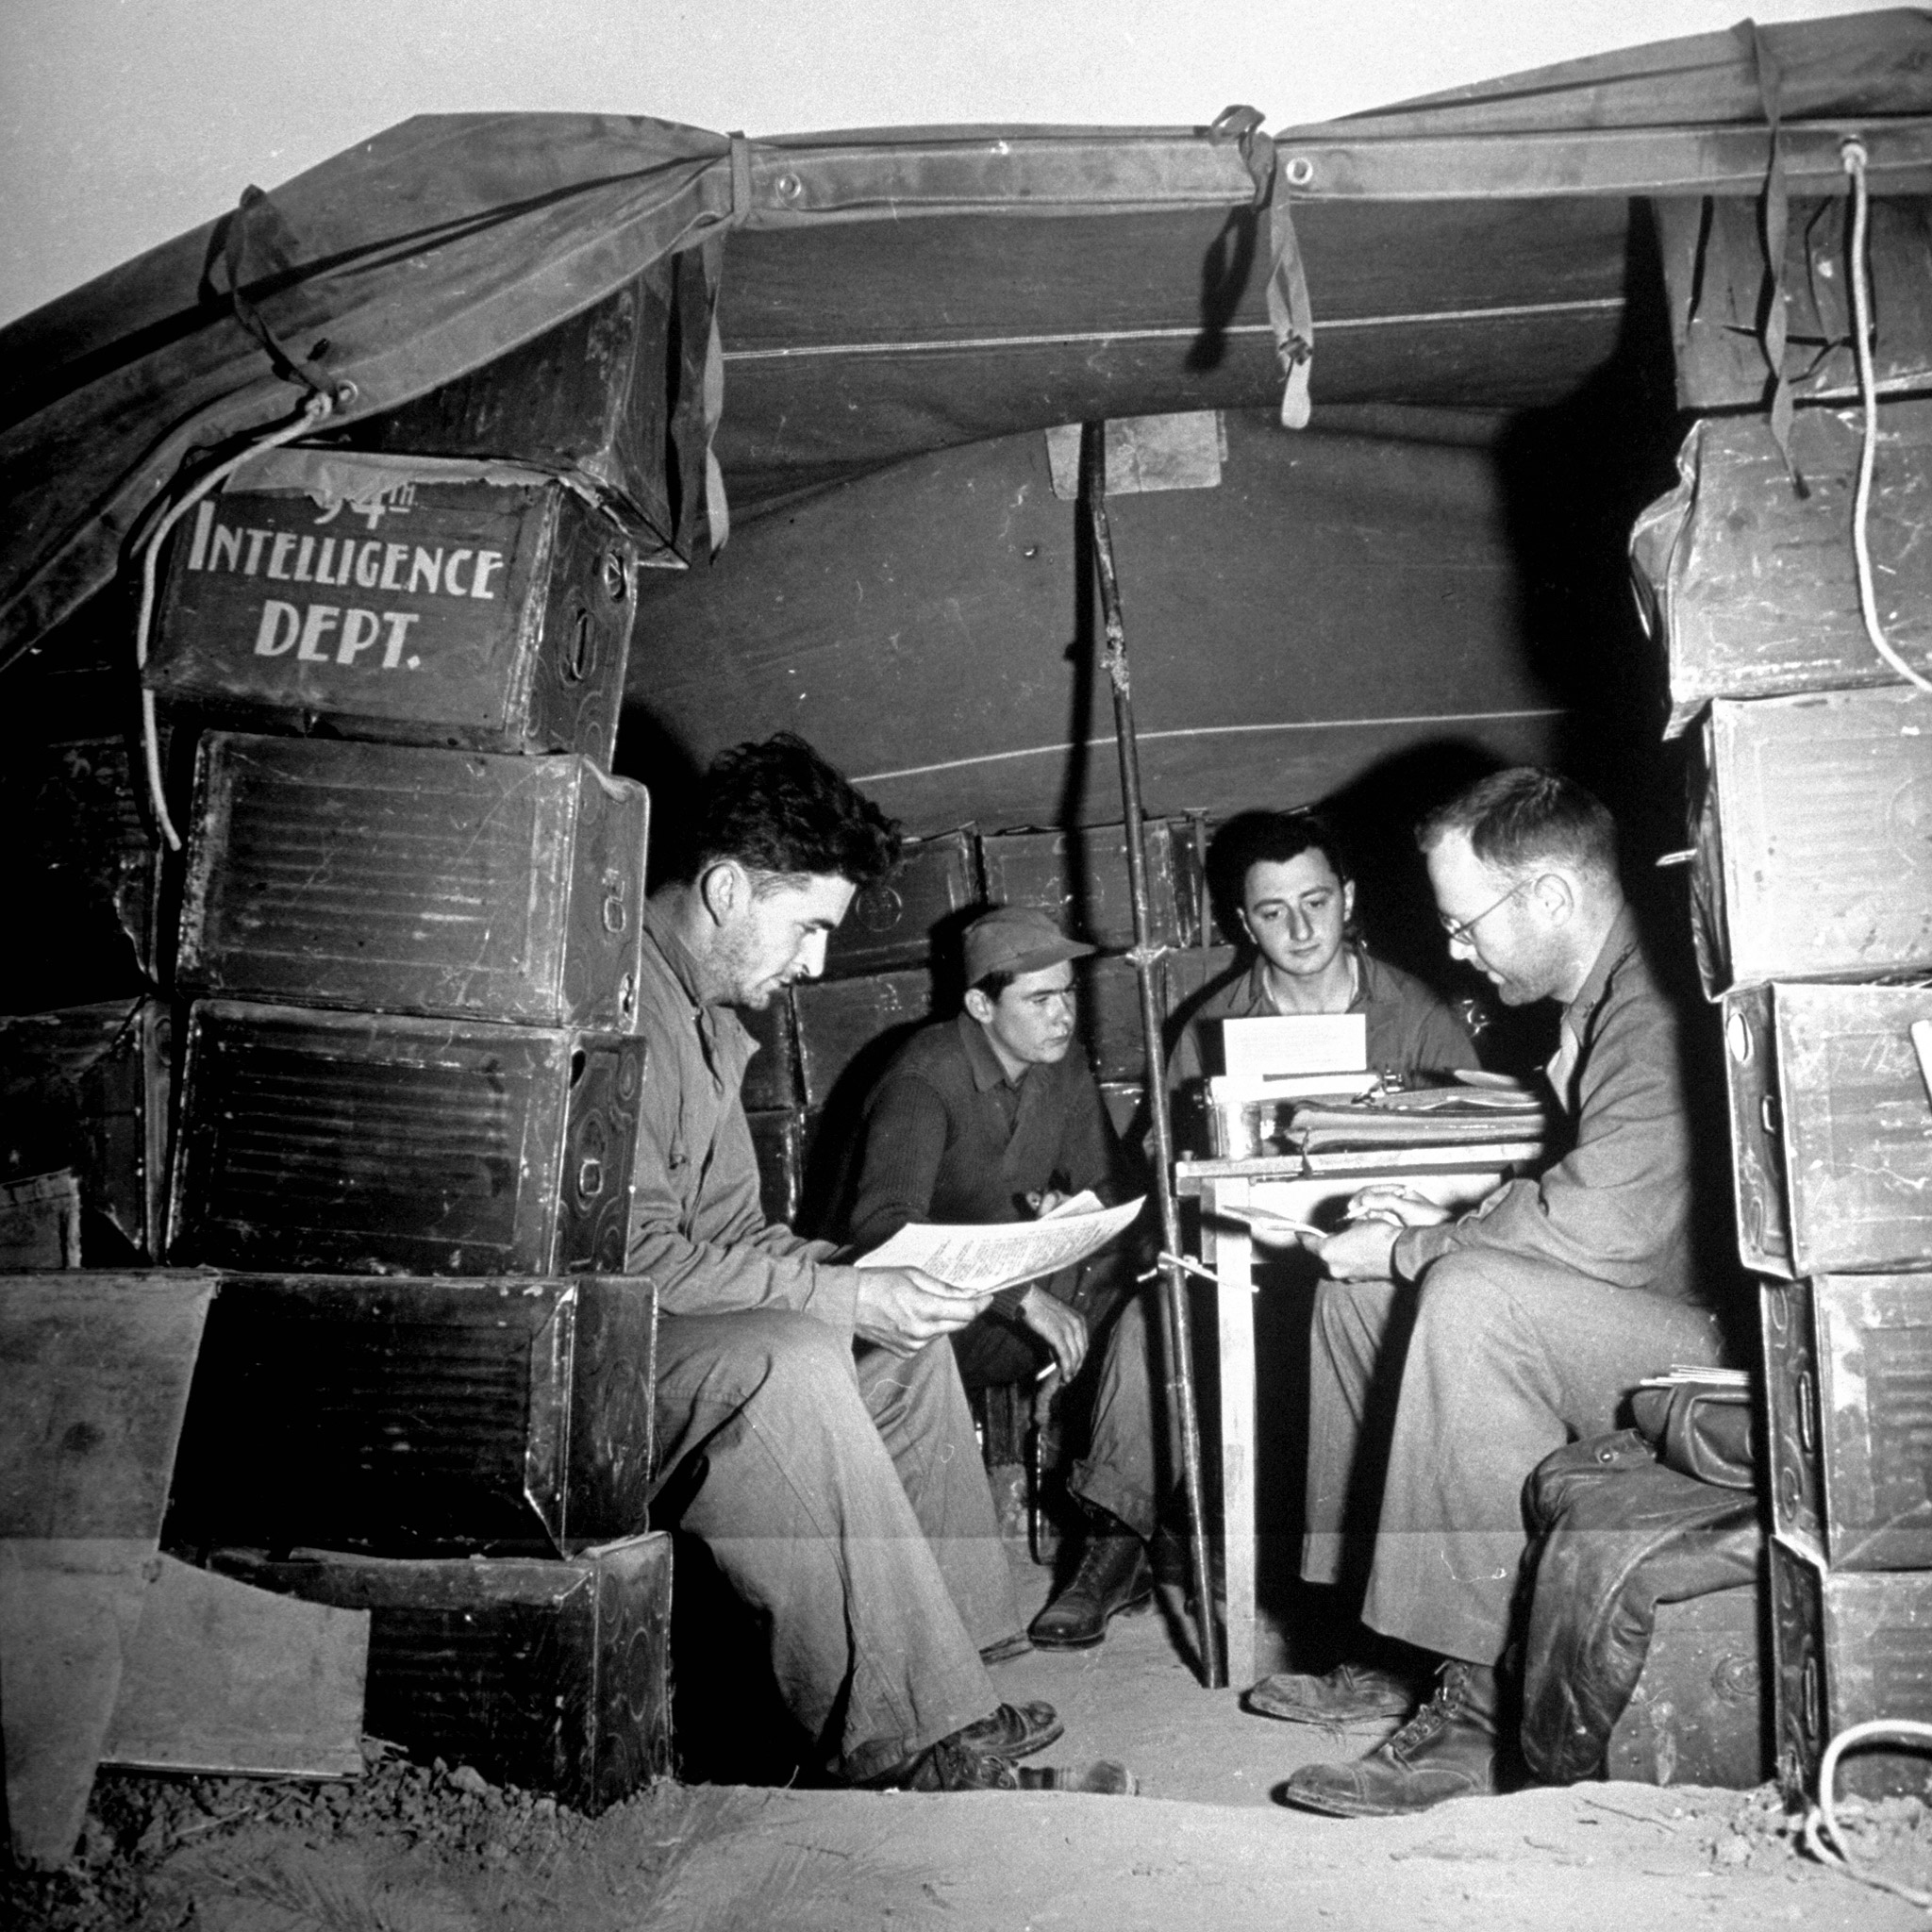 Men of the Intelligence dept. of the 94th Fighter Group gathered around man at typewriter who is typing up combat reports on the last bombing mission in which their group escorted B-17s, at airdrome in the Sahara.